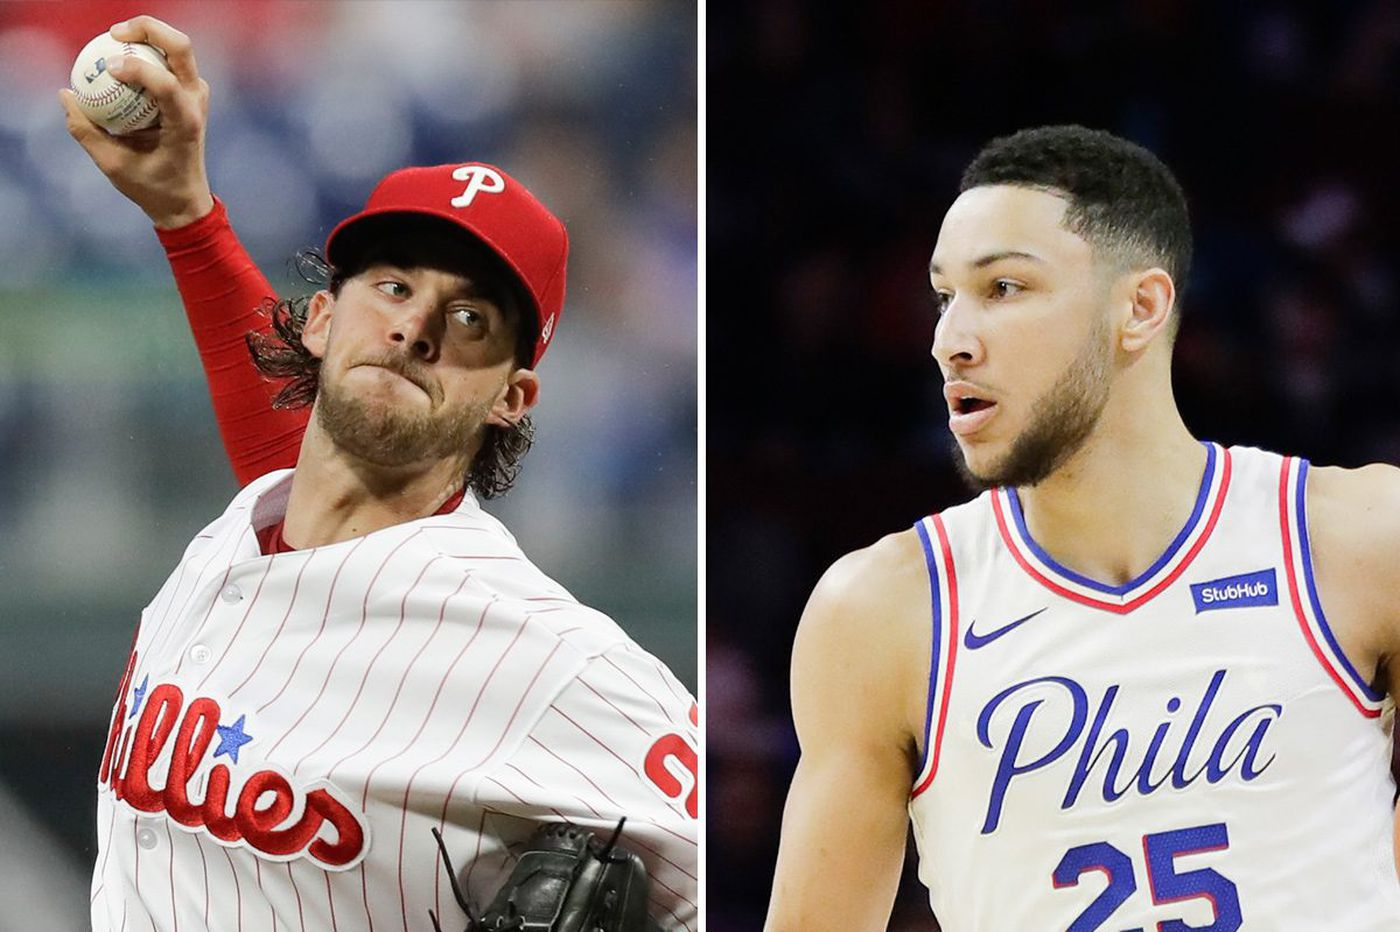 Sixers' TV ratings up big, while Phillies' are mixed